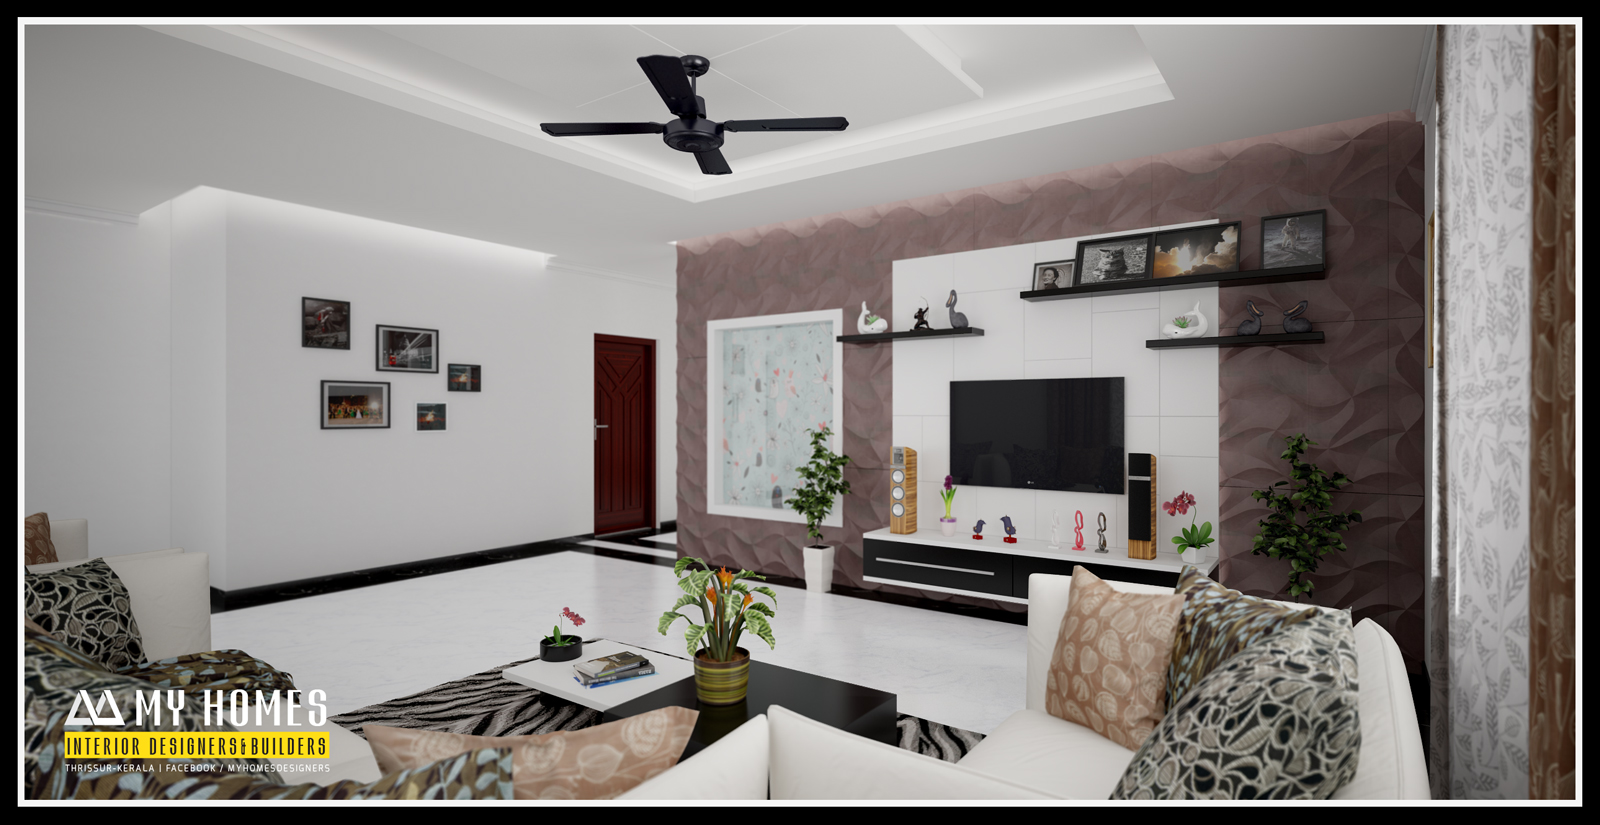 Kerala interior design ideas from designing company thrissur for Interior design of room